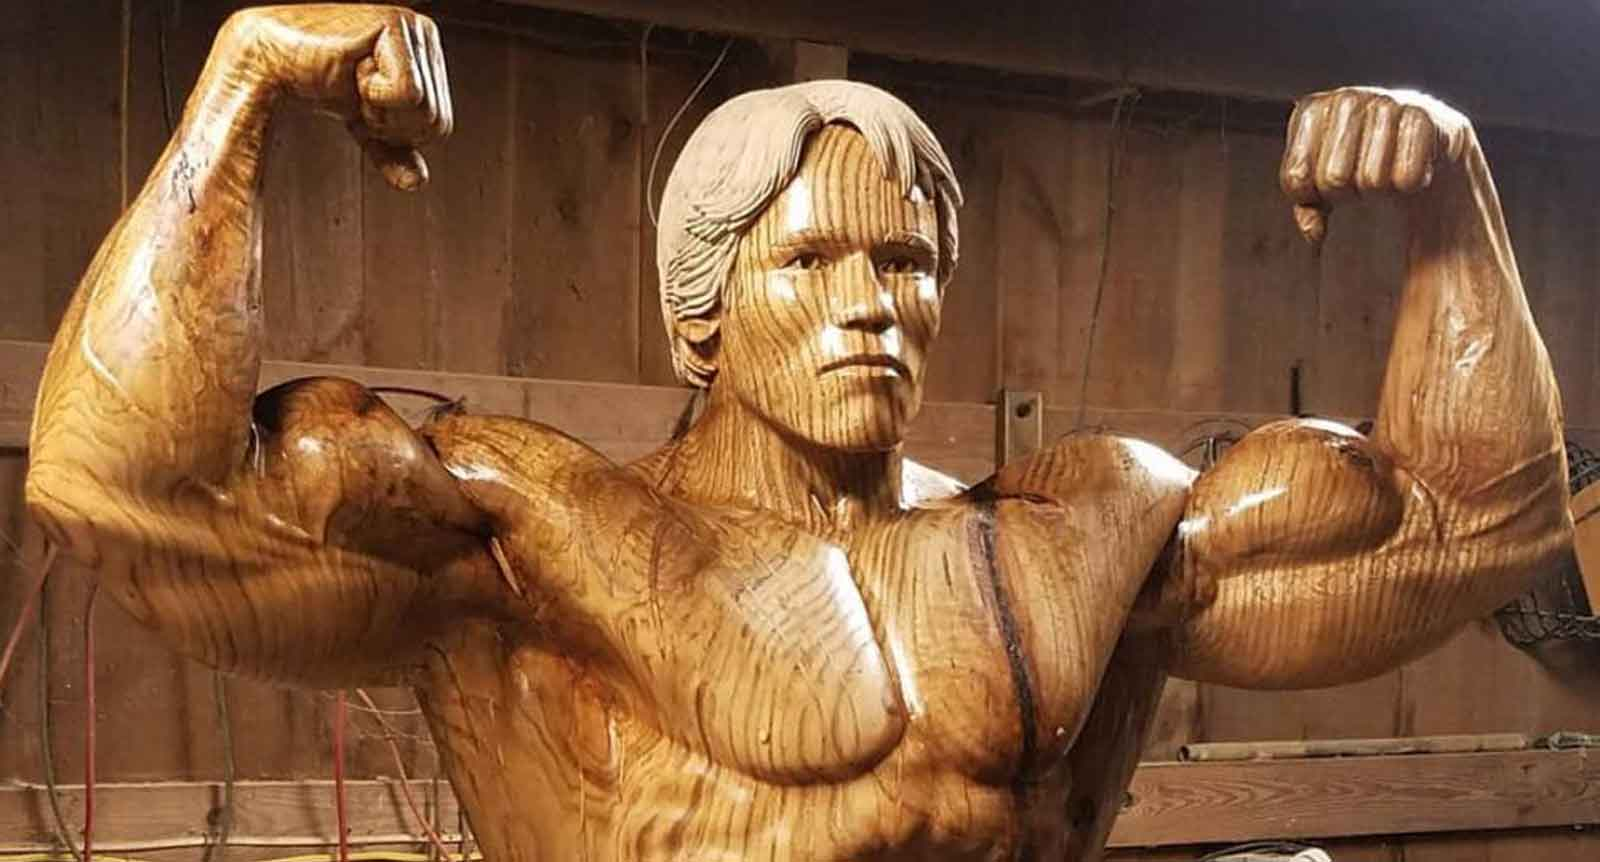 Sculptor Carves Arnold Schwarzenegger Out Of Black Oak Tree Trunk